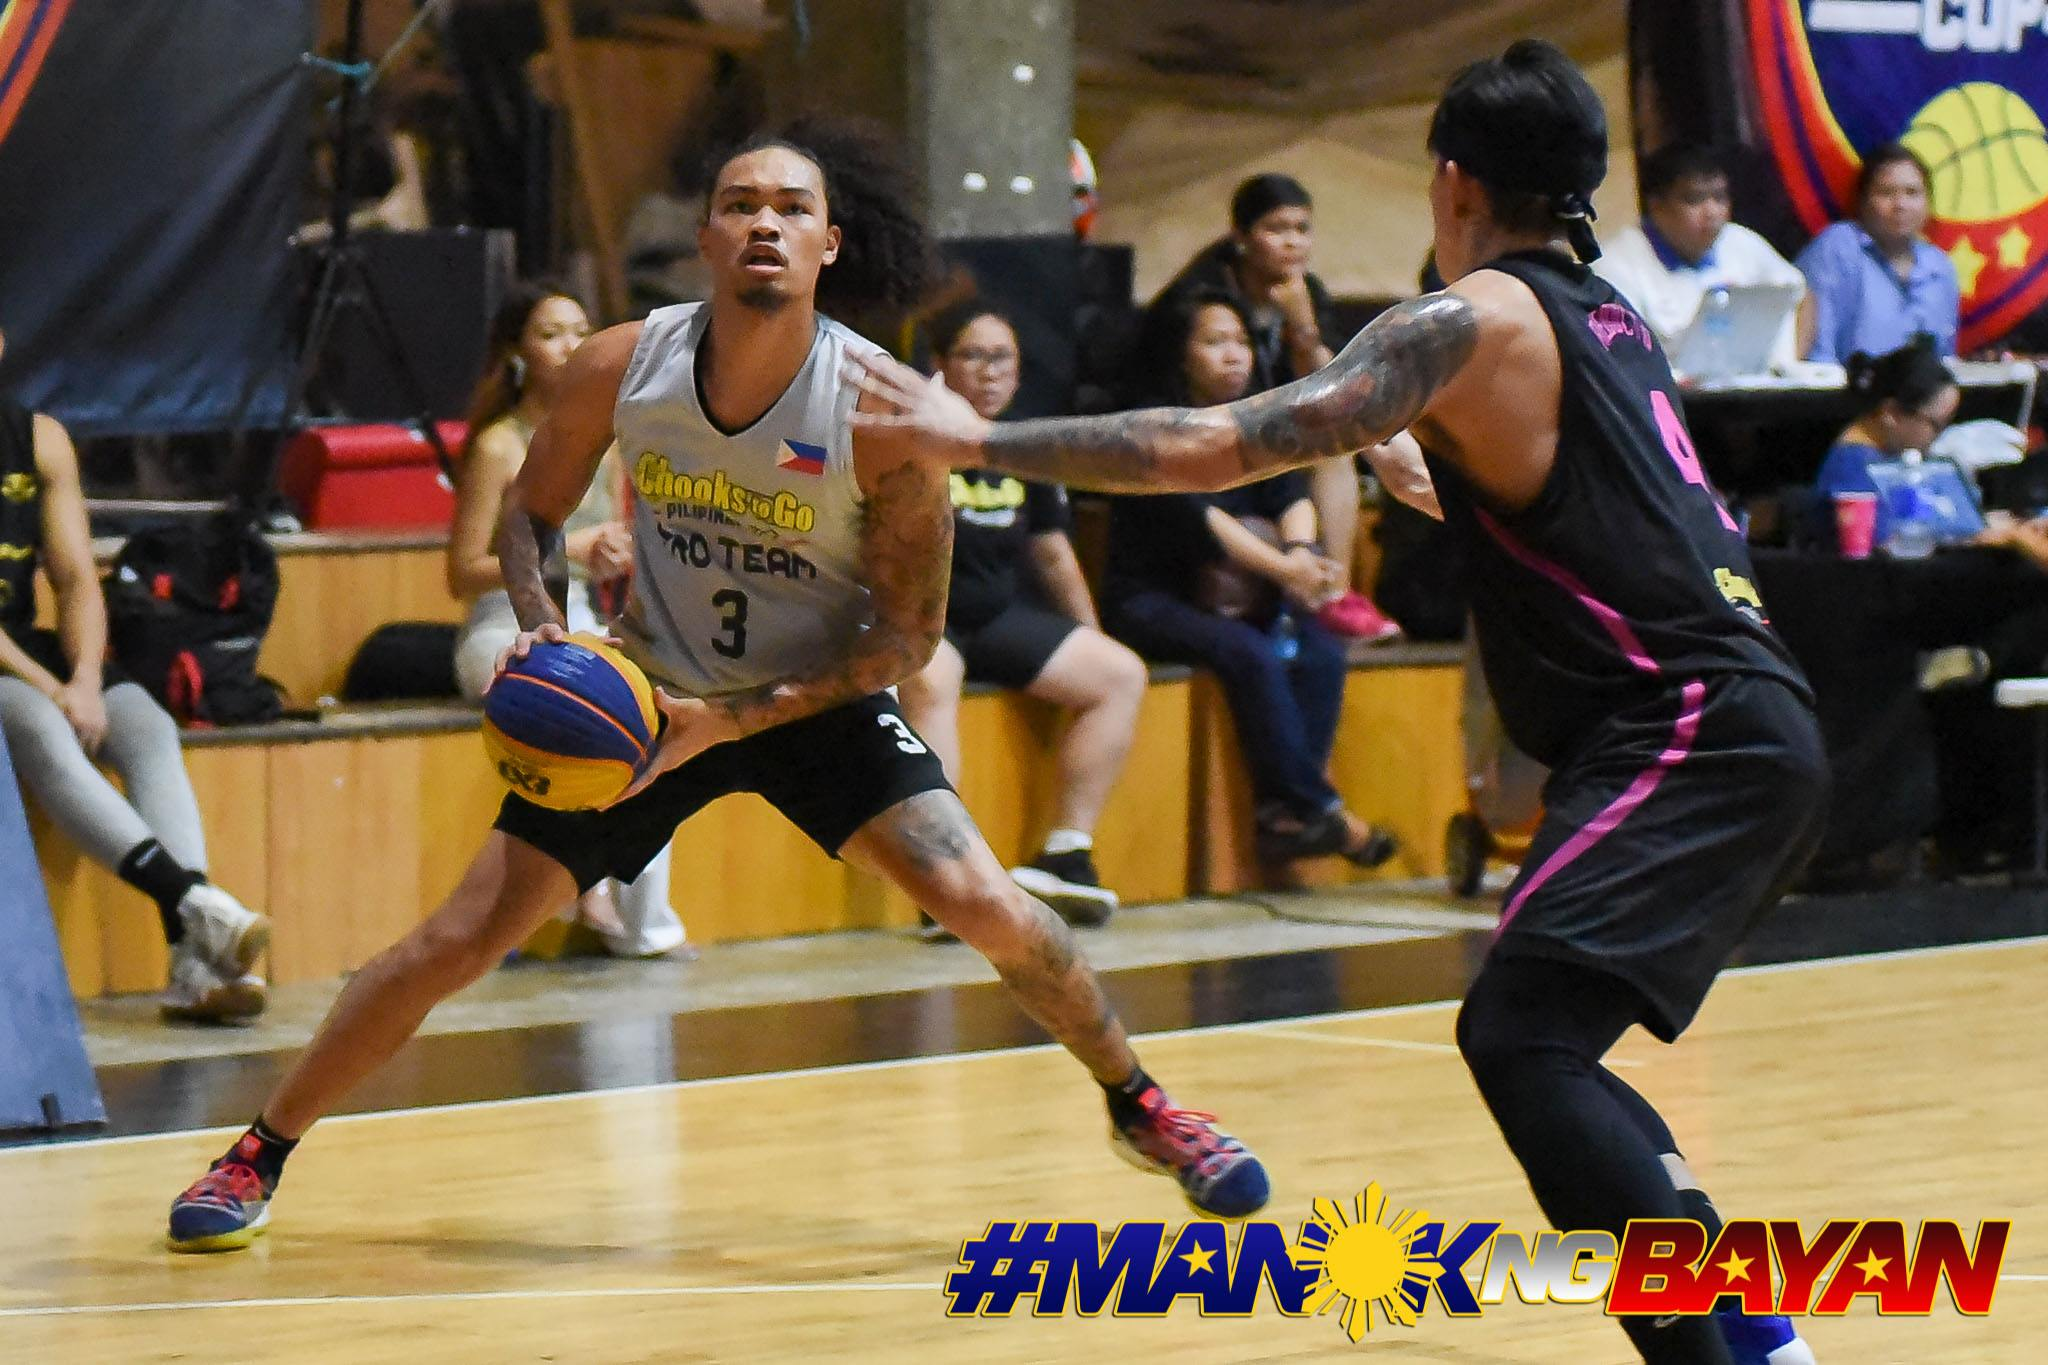 Tiebreaker Times Munzon, Pasig vent ire on Binan City to take fifth MelMac Cup leg 3x3 Basketball Chooks-to-Go Pilipinas 3x3 News  Troy Rike Pasig Chooks MSC Biñan City–Azi&Tets Travel N Tours Joshua Munzon Franky Johnson Dylan Ababou Dan Reducto Adrian Celada 2019 Chooks-to-Go Pilipinas 3x3 Season 2019 Chooks-to-Go Pilipinas 3x3 MelMac Cup